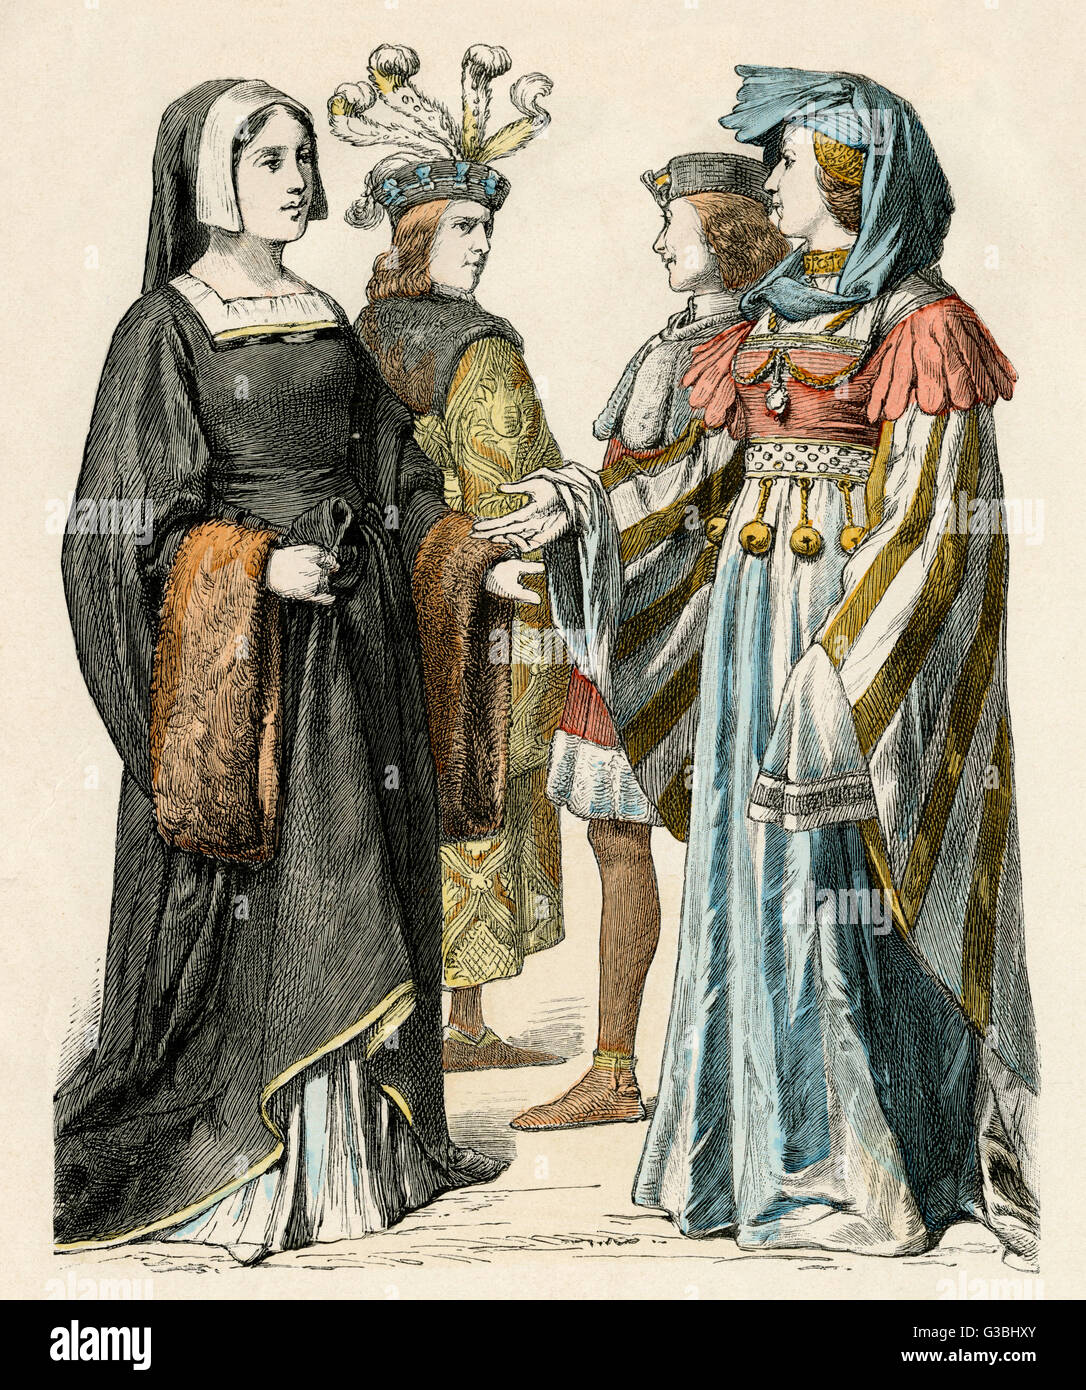 Women: gown with square  neckline (chemise visible),  funnel sleeves with fur  borders, hood-like headdress,  gown - Stock Image